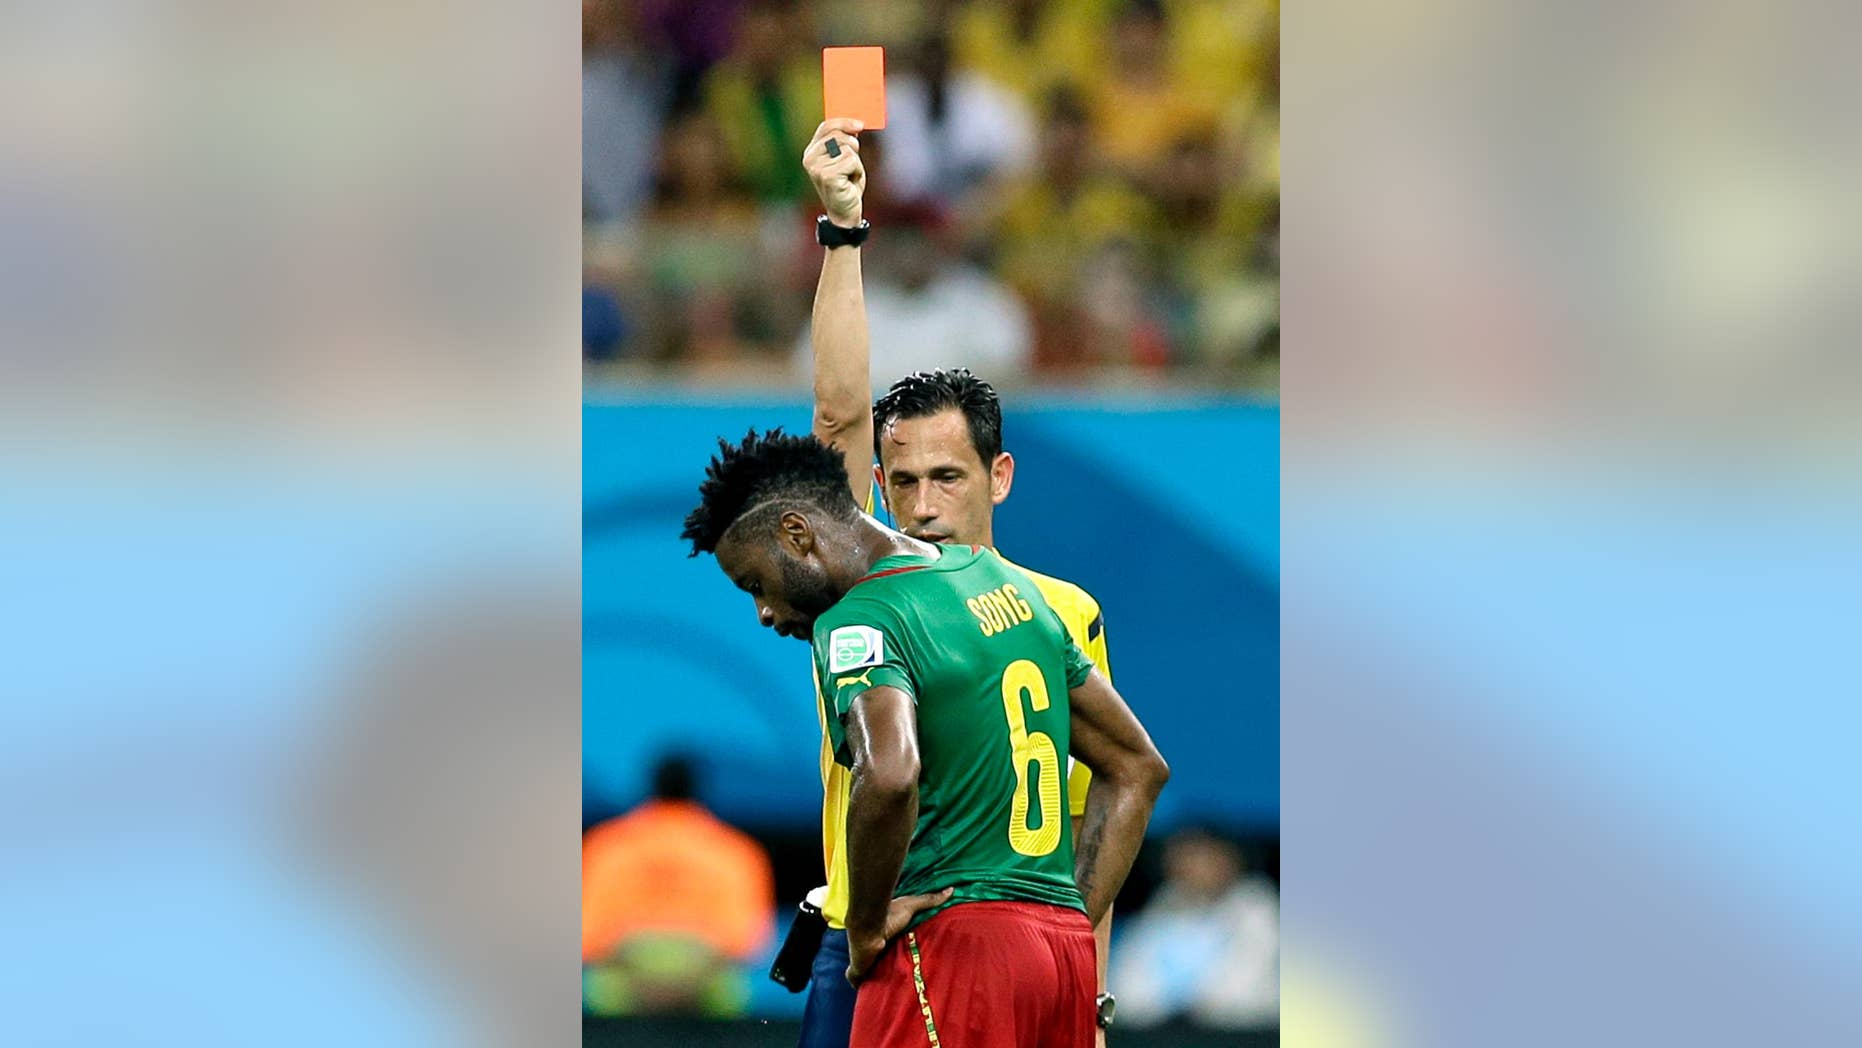 """FILE - In this Wednesday, June 18, 2014 file photo, referee Pedro Proenca from Portugal gives a red card to Cameroon's Alex Song during the group A World Cup soccer match between Cameroon and Croatia at the Arena da Amazonia in Manaus, Brazil. Cameroon's football federation said late Monday, June 30, 2014, it will investigate allegations of match-fixing by its team at the World Cup and the possible existence of """"seven bad apples"""" in the squad. (AP Photo/Themba Hadebe, File)"""